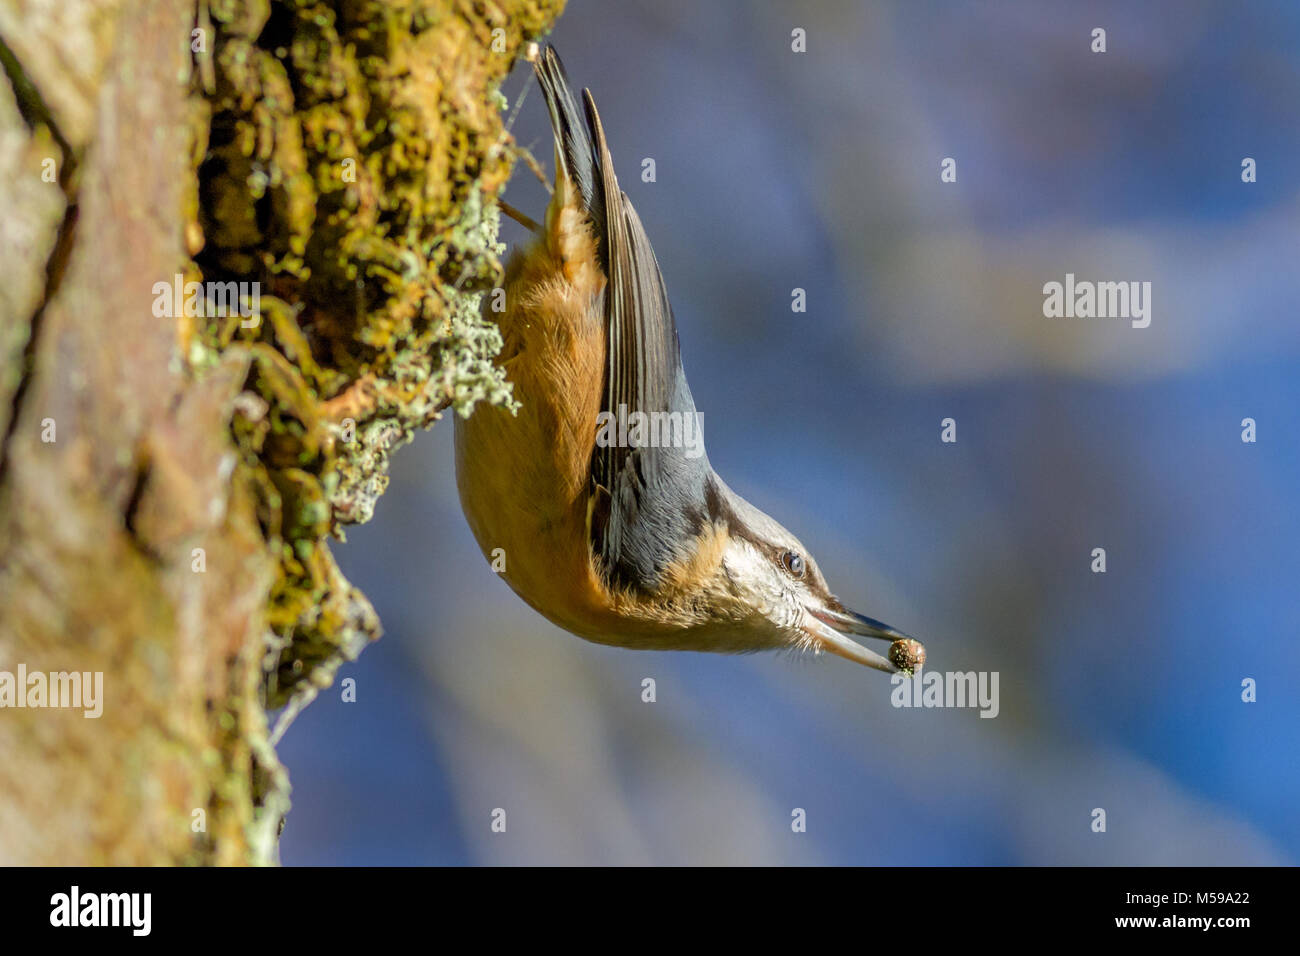 UK wildlife: Known for caching food, this beautiful nuthatch (Sitta europaea) has just found a nut or seed in the - Stock Image